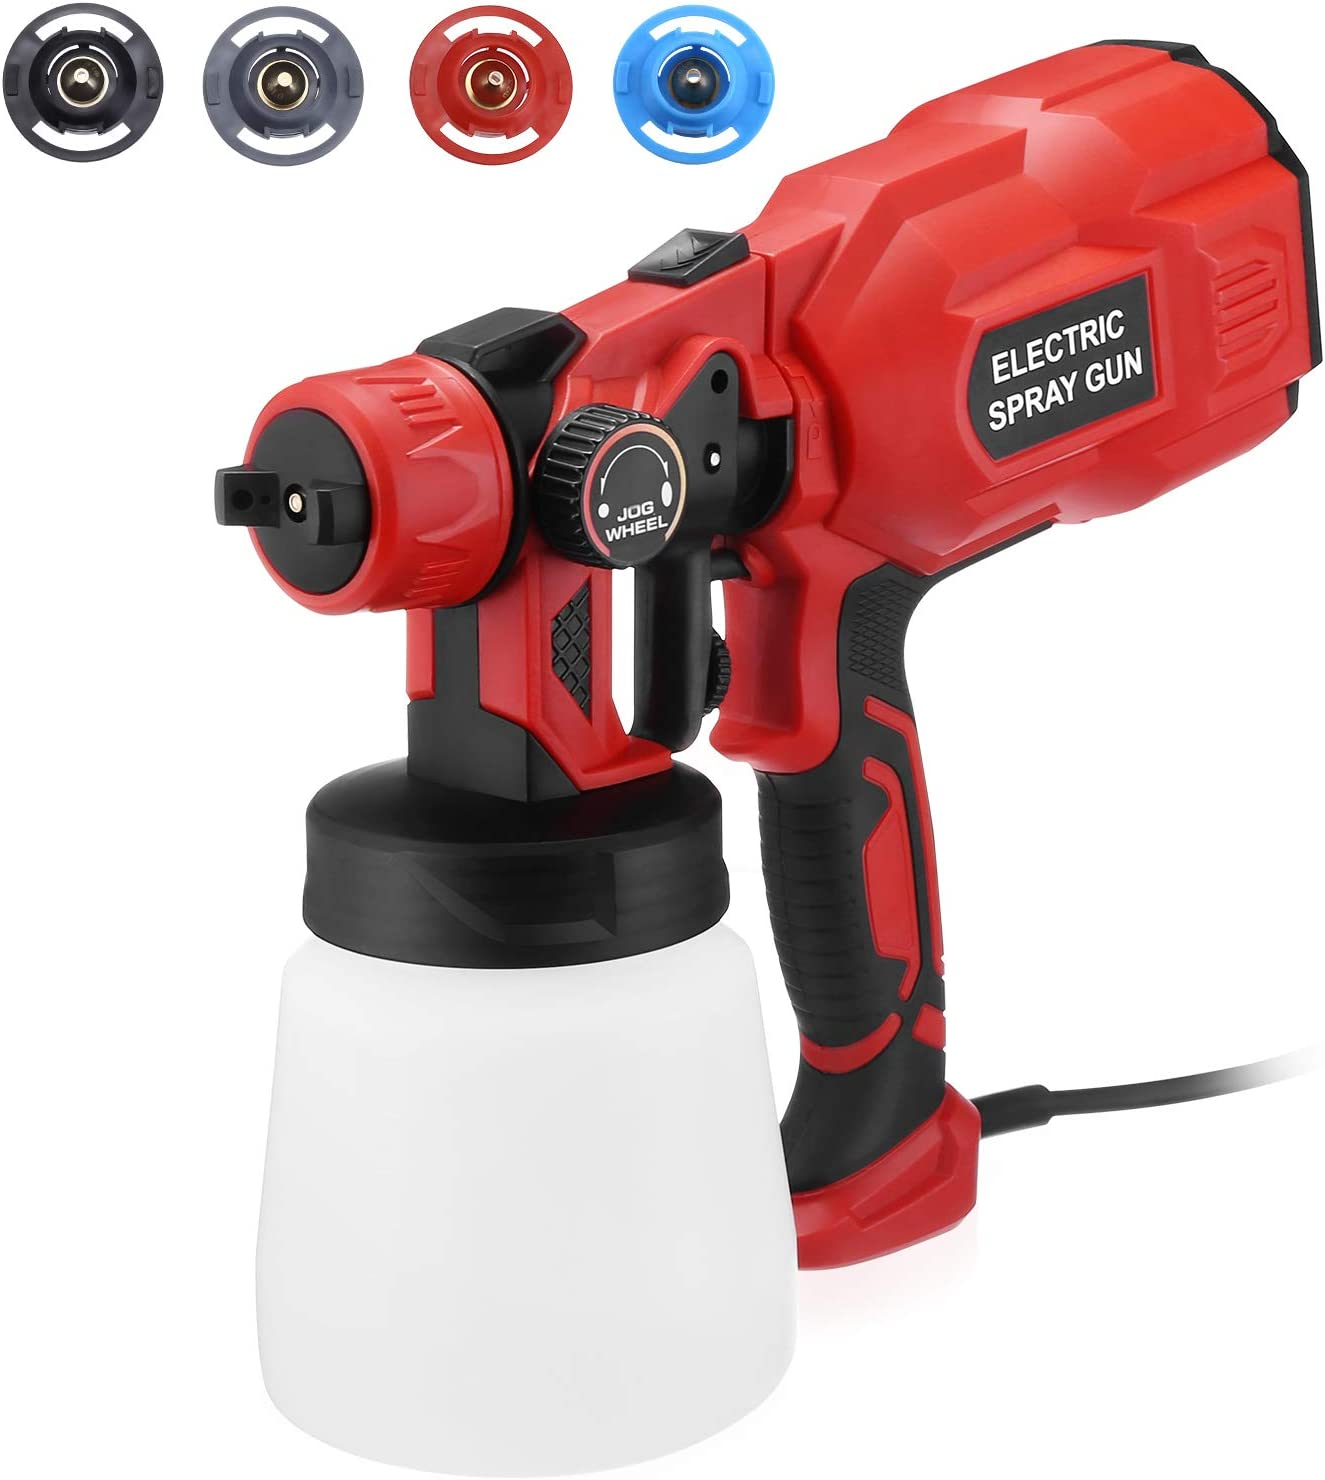 FirstPower HVLP Electric Paint Sprayer Spray Year-end annual account Eas Strong Force Inventory cleanup selling sale -